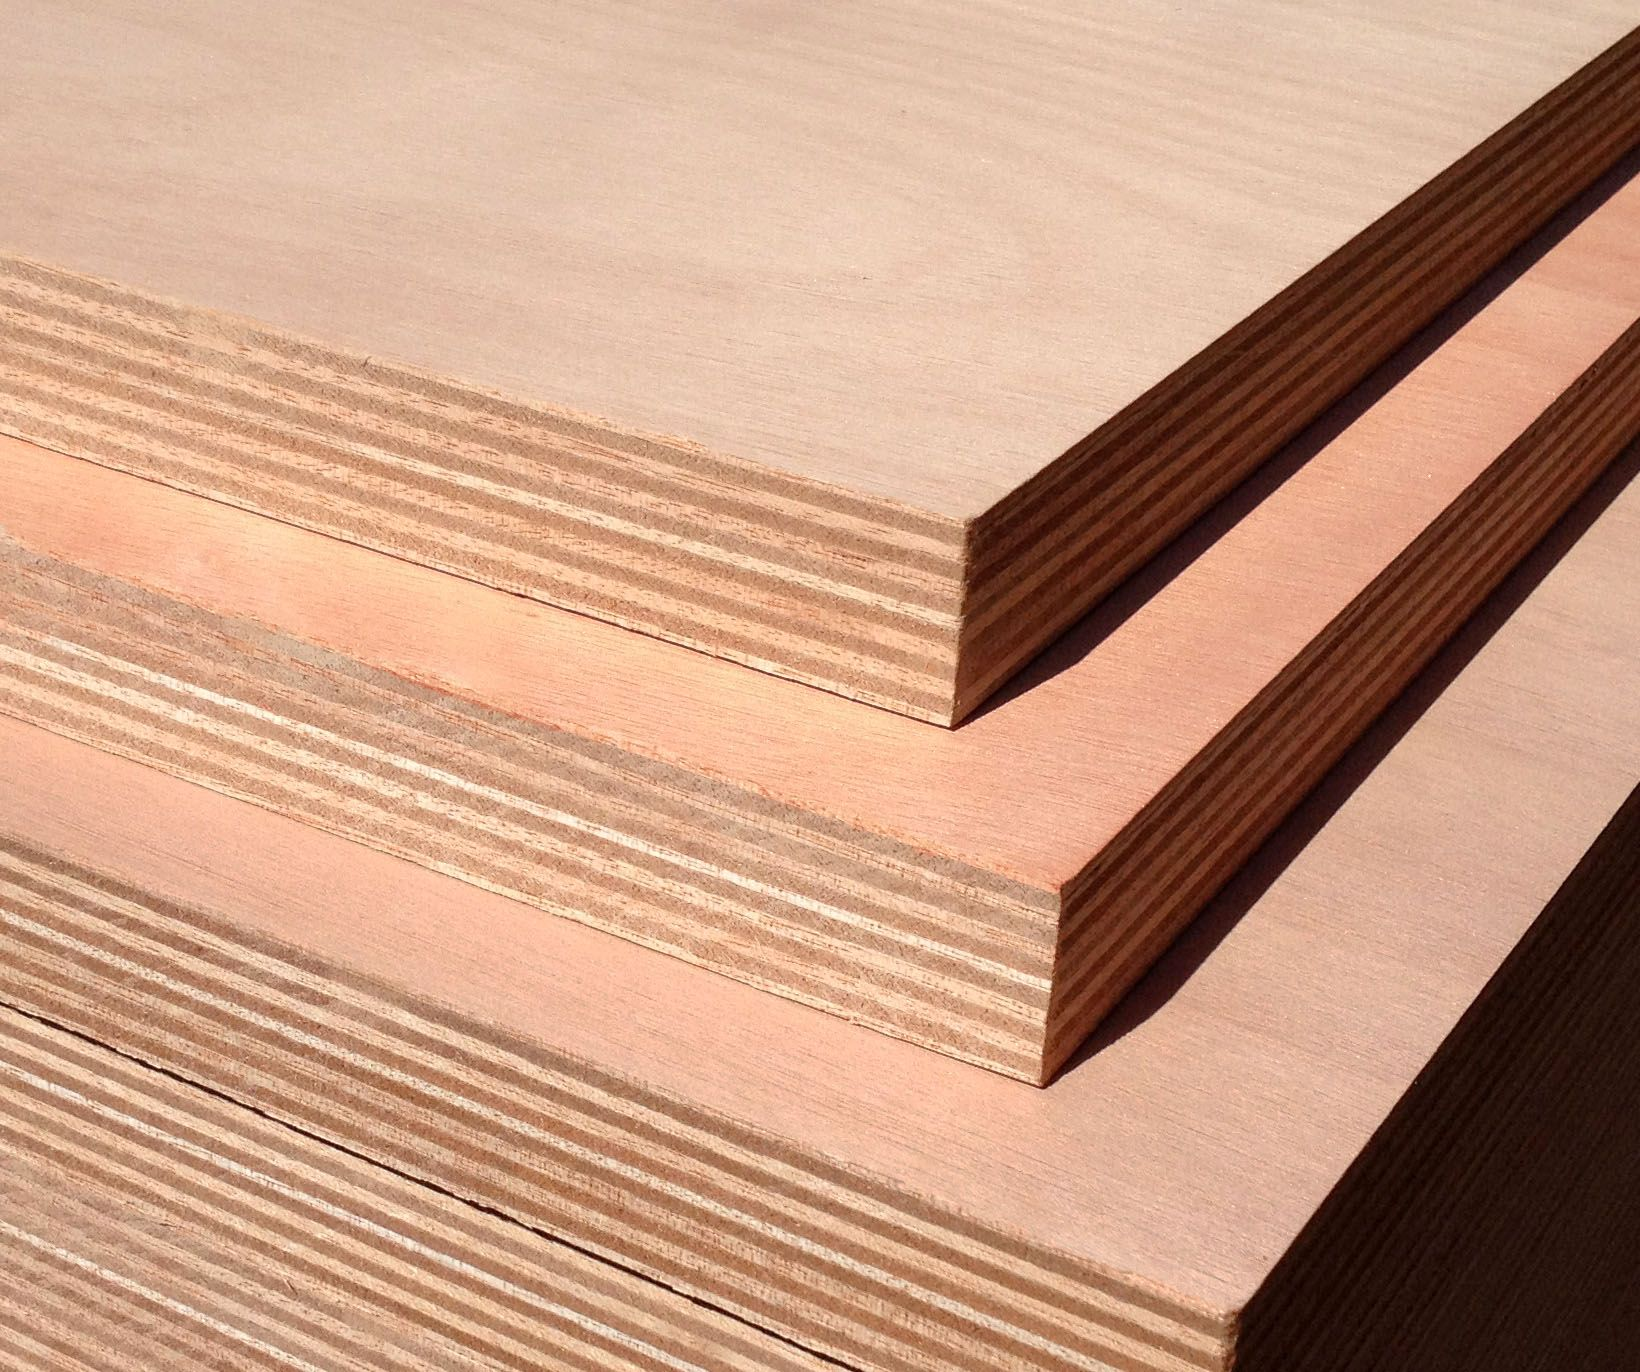 Marine Grade Plywood Marine Plywood Marine Grade Plywood Plywood Suppliers